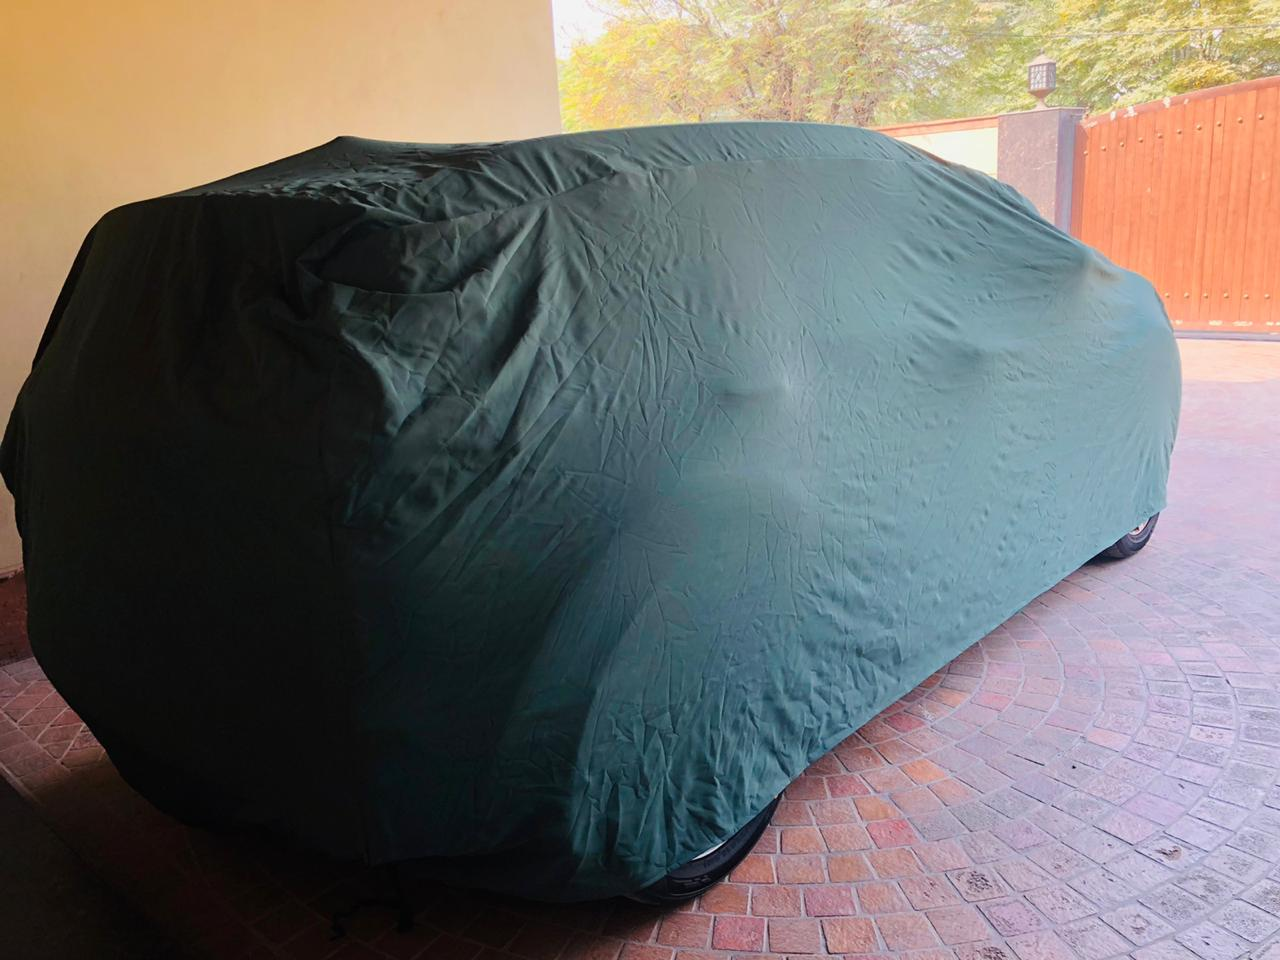 Toyota Corolla Model 2014-2018 Microfiber Car Top Cover